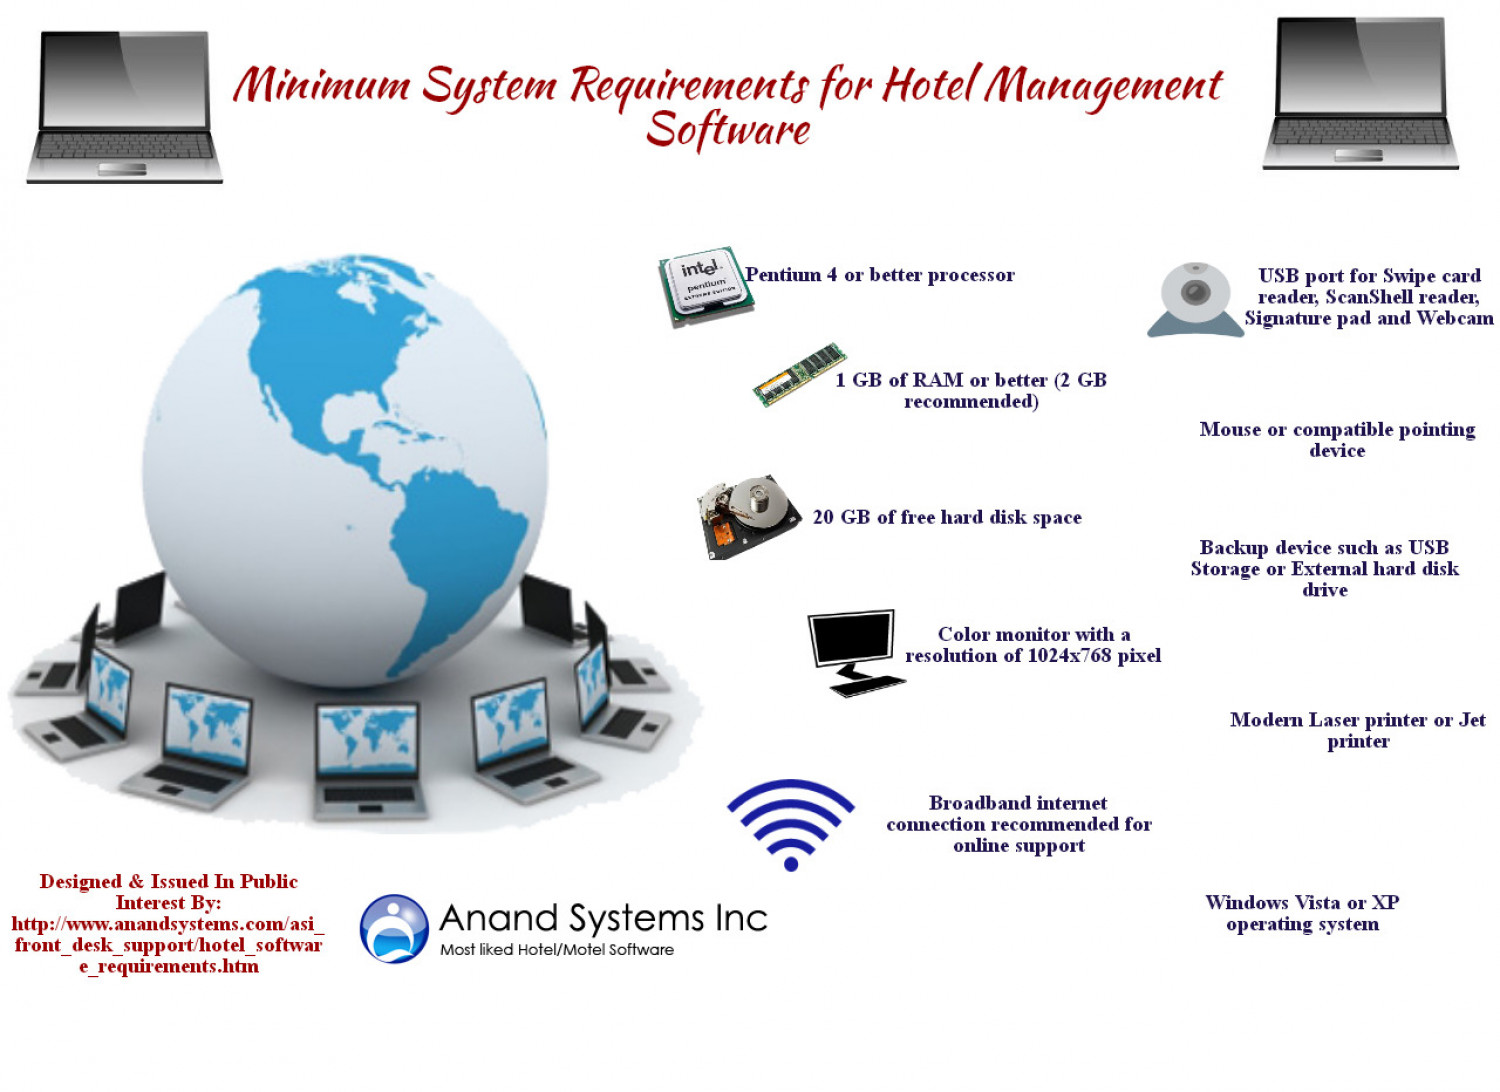 Minimum System Requirements For Hotel Management Software Visual Ly